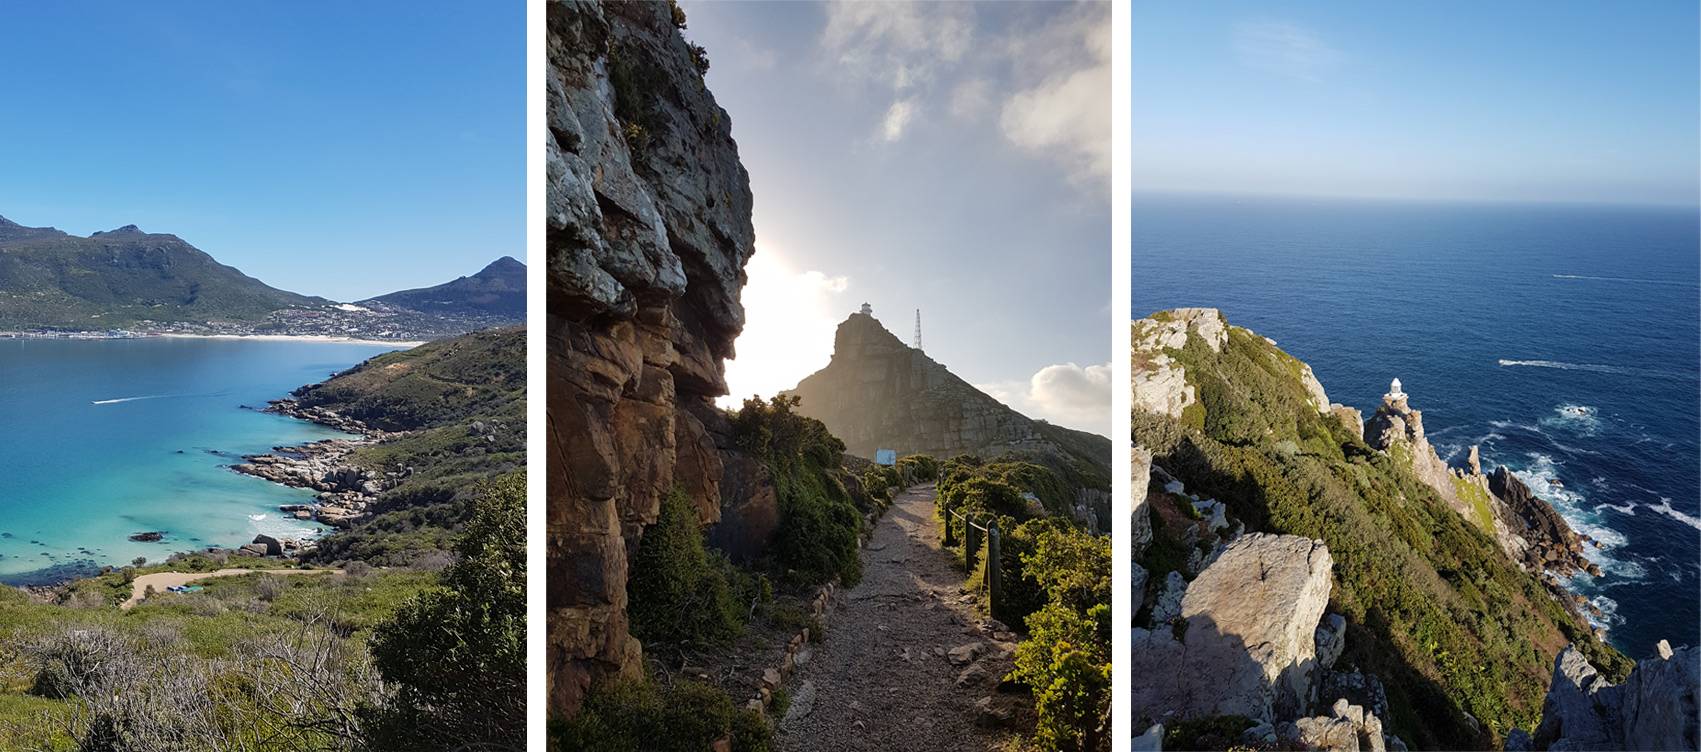 Hiking Trails at Cape of Good Hope and Chapman's Peak Drive